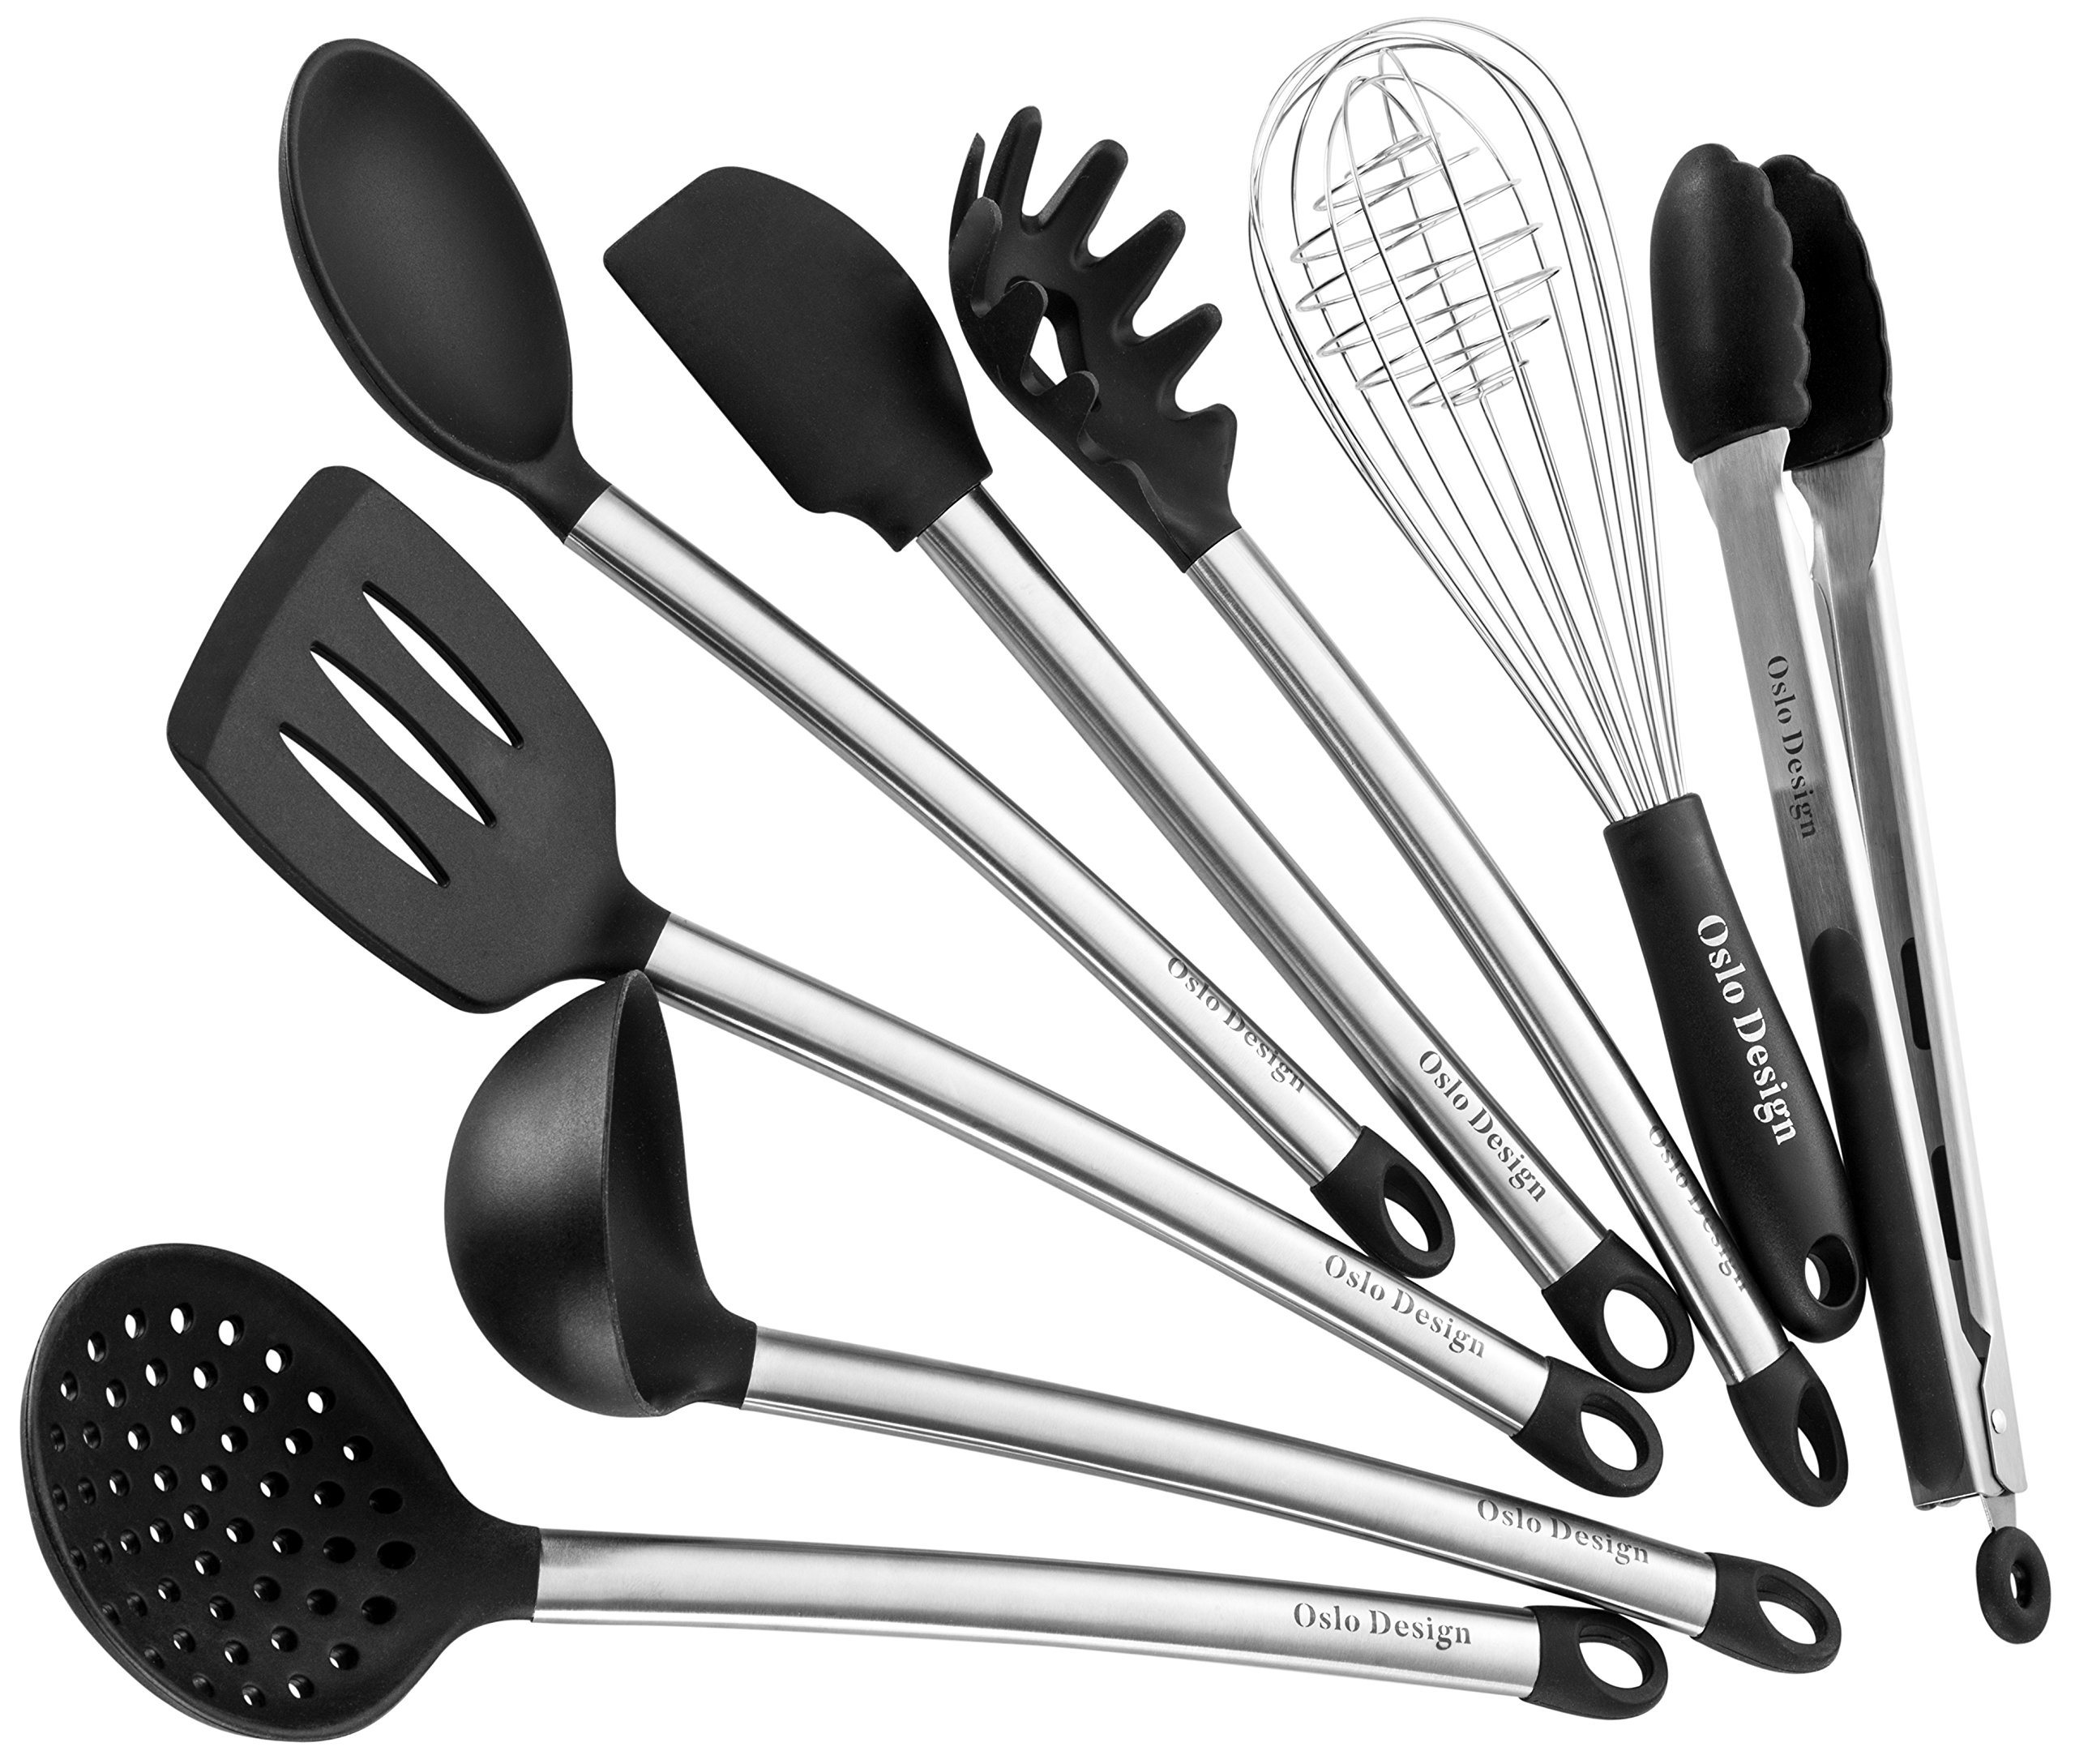 Kitchen Utensil set - 8 Piece Cooking Utensils for nonstick cookware -Made Of Silicone and Stainless Steel -Includes Spoon, Egg Whisk, Serving Tong, Spatula Tools, Pasta Server, Ladle, Strainer by Oslo Design (Image #1)